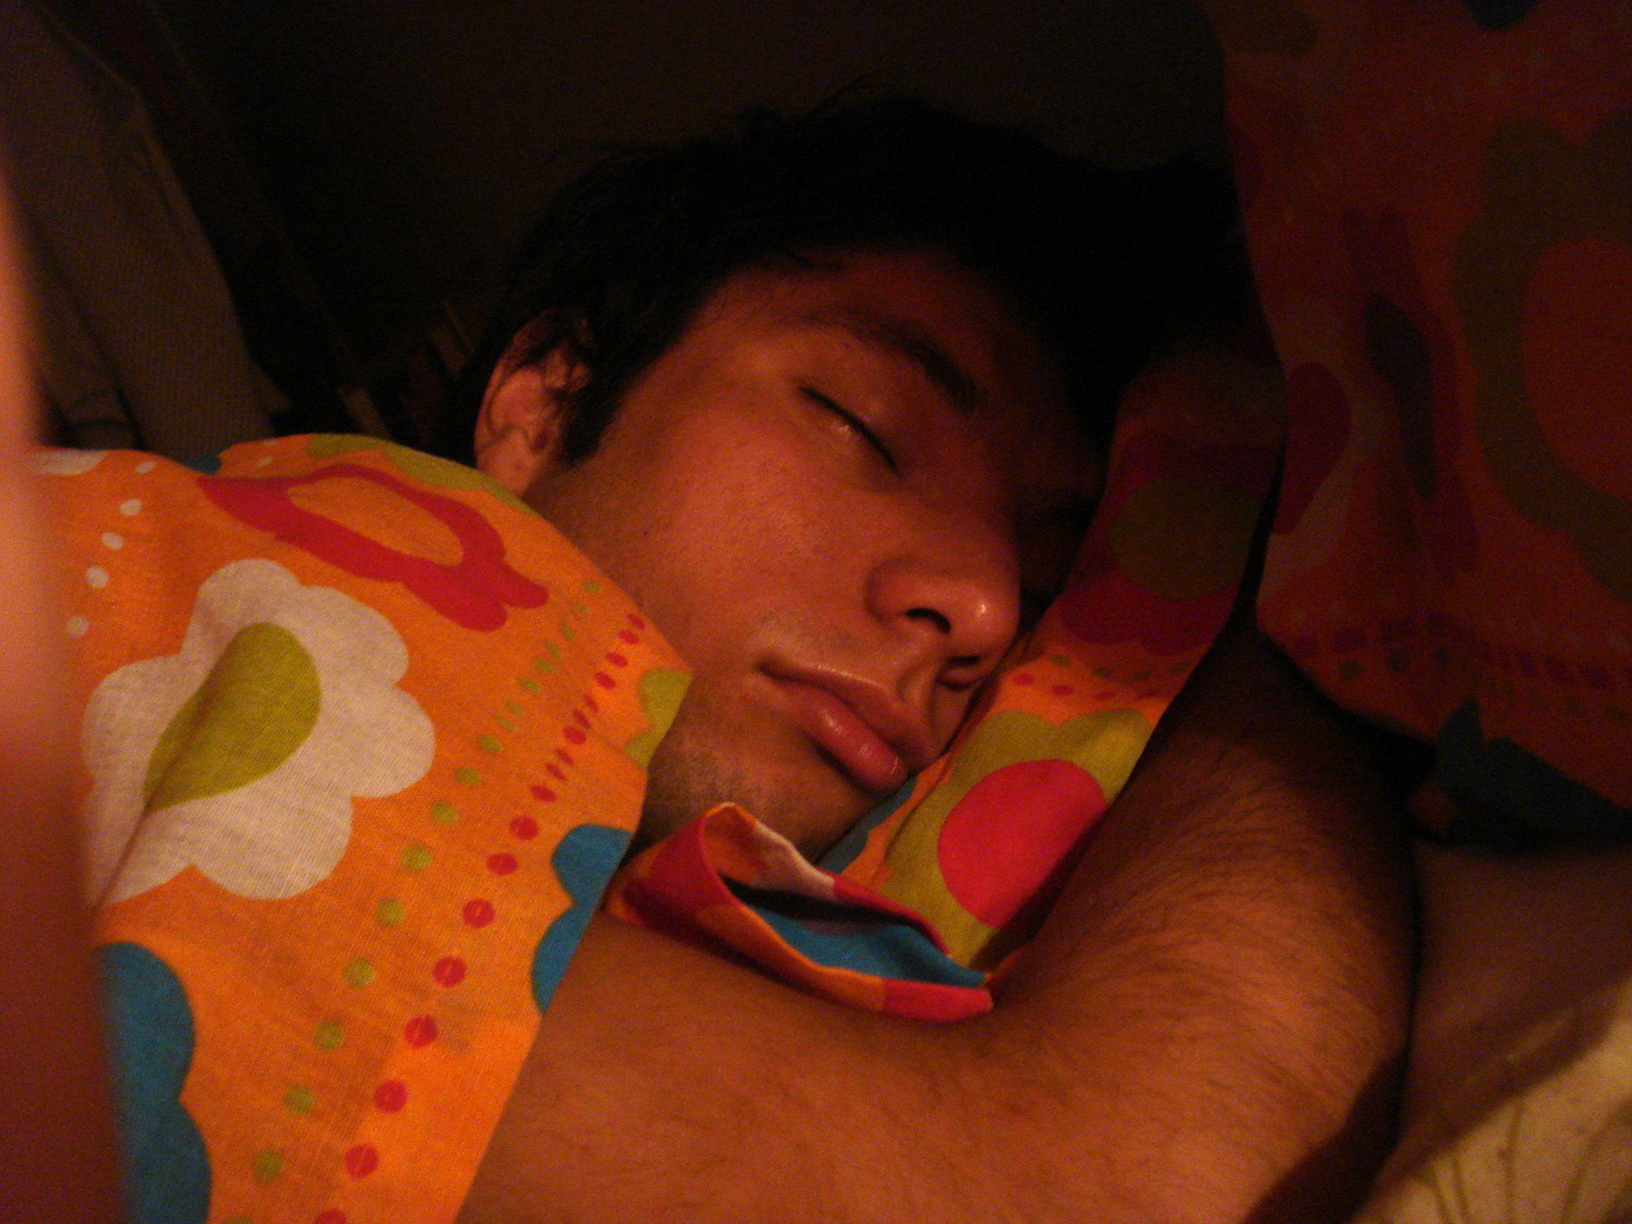 Leave me where I am, I´m only sleeping